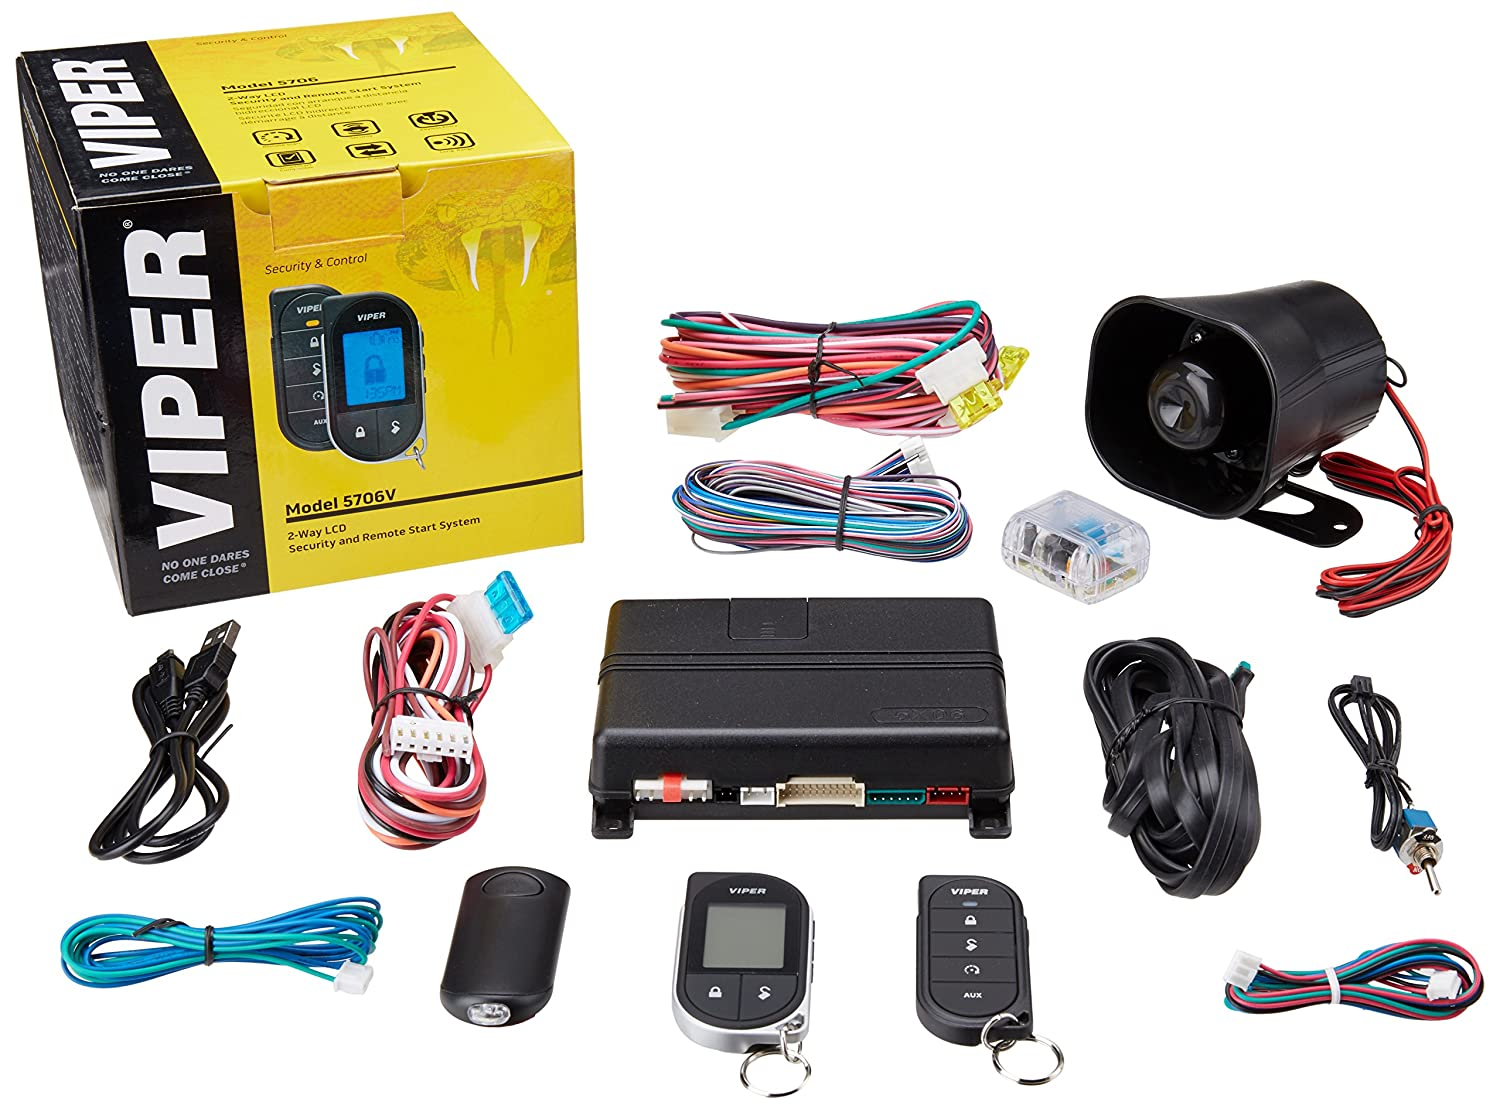 amazon com: viper 5706v 2-way car security with remote start system: cell  phones & accessories